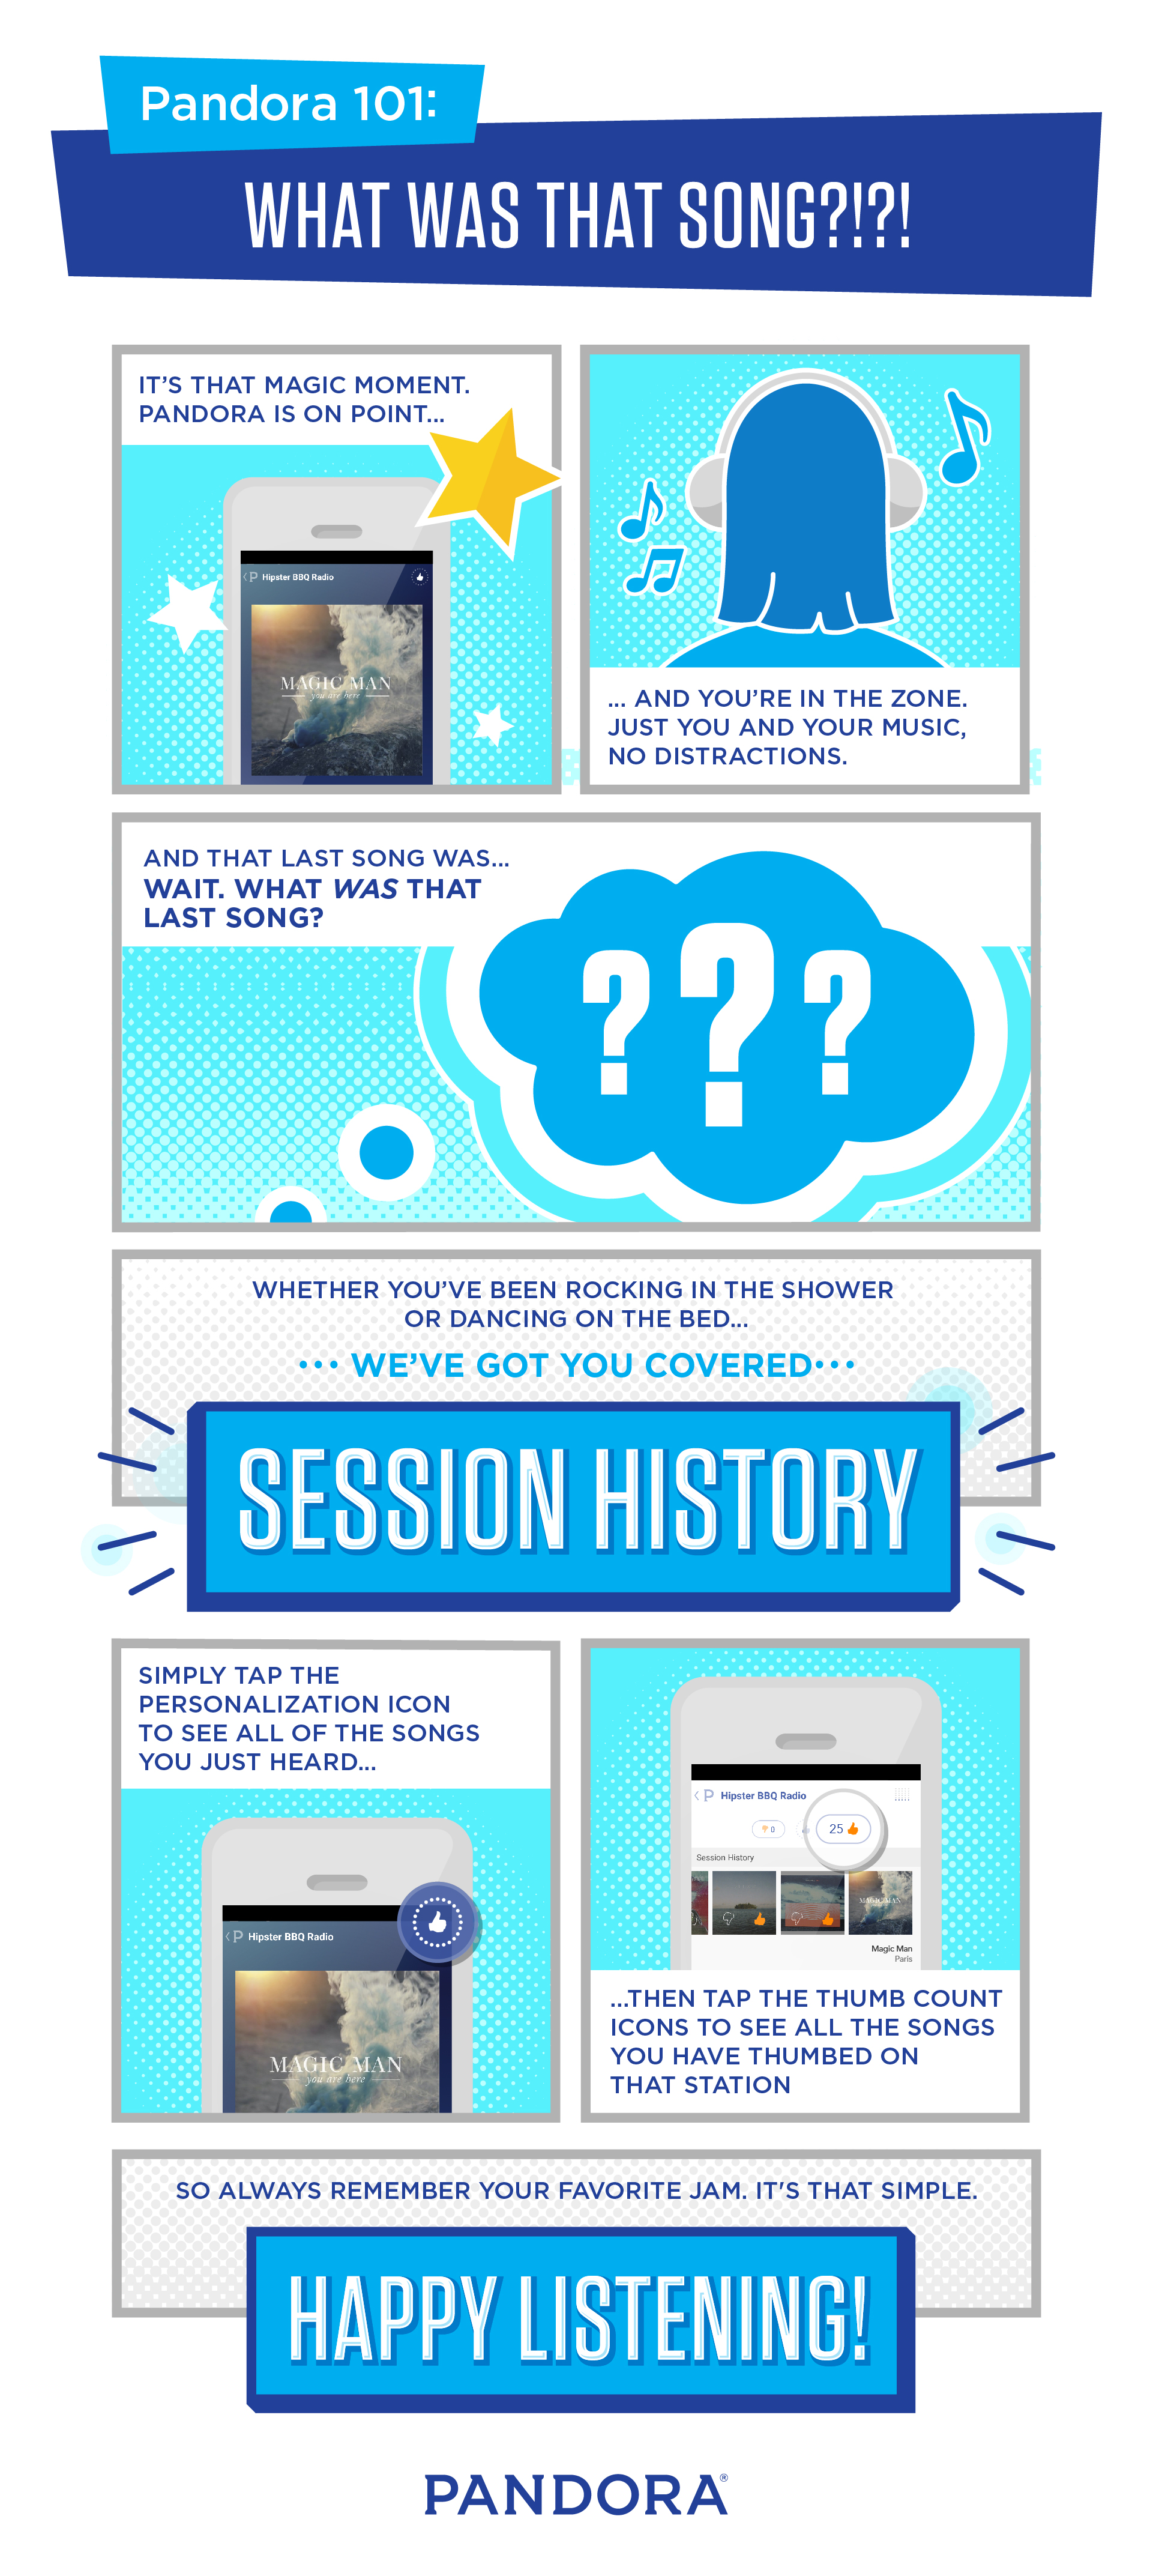 1060_P101_Blog_SessionHistory_R2